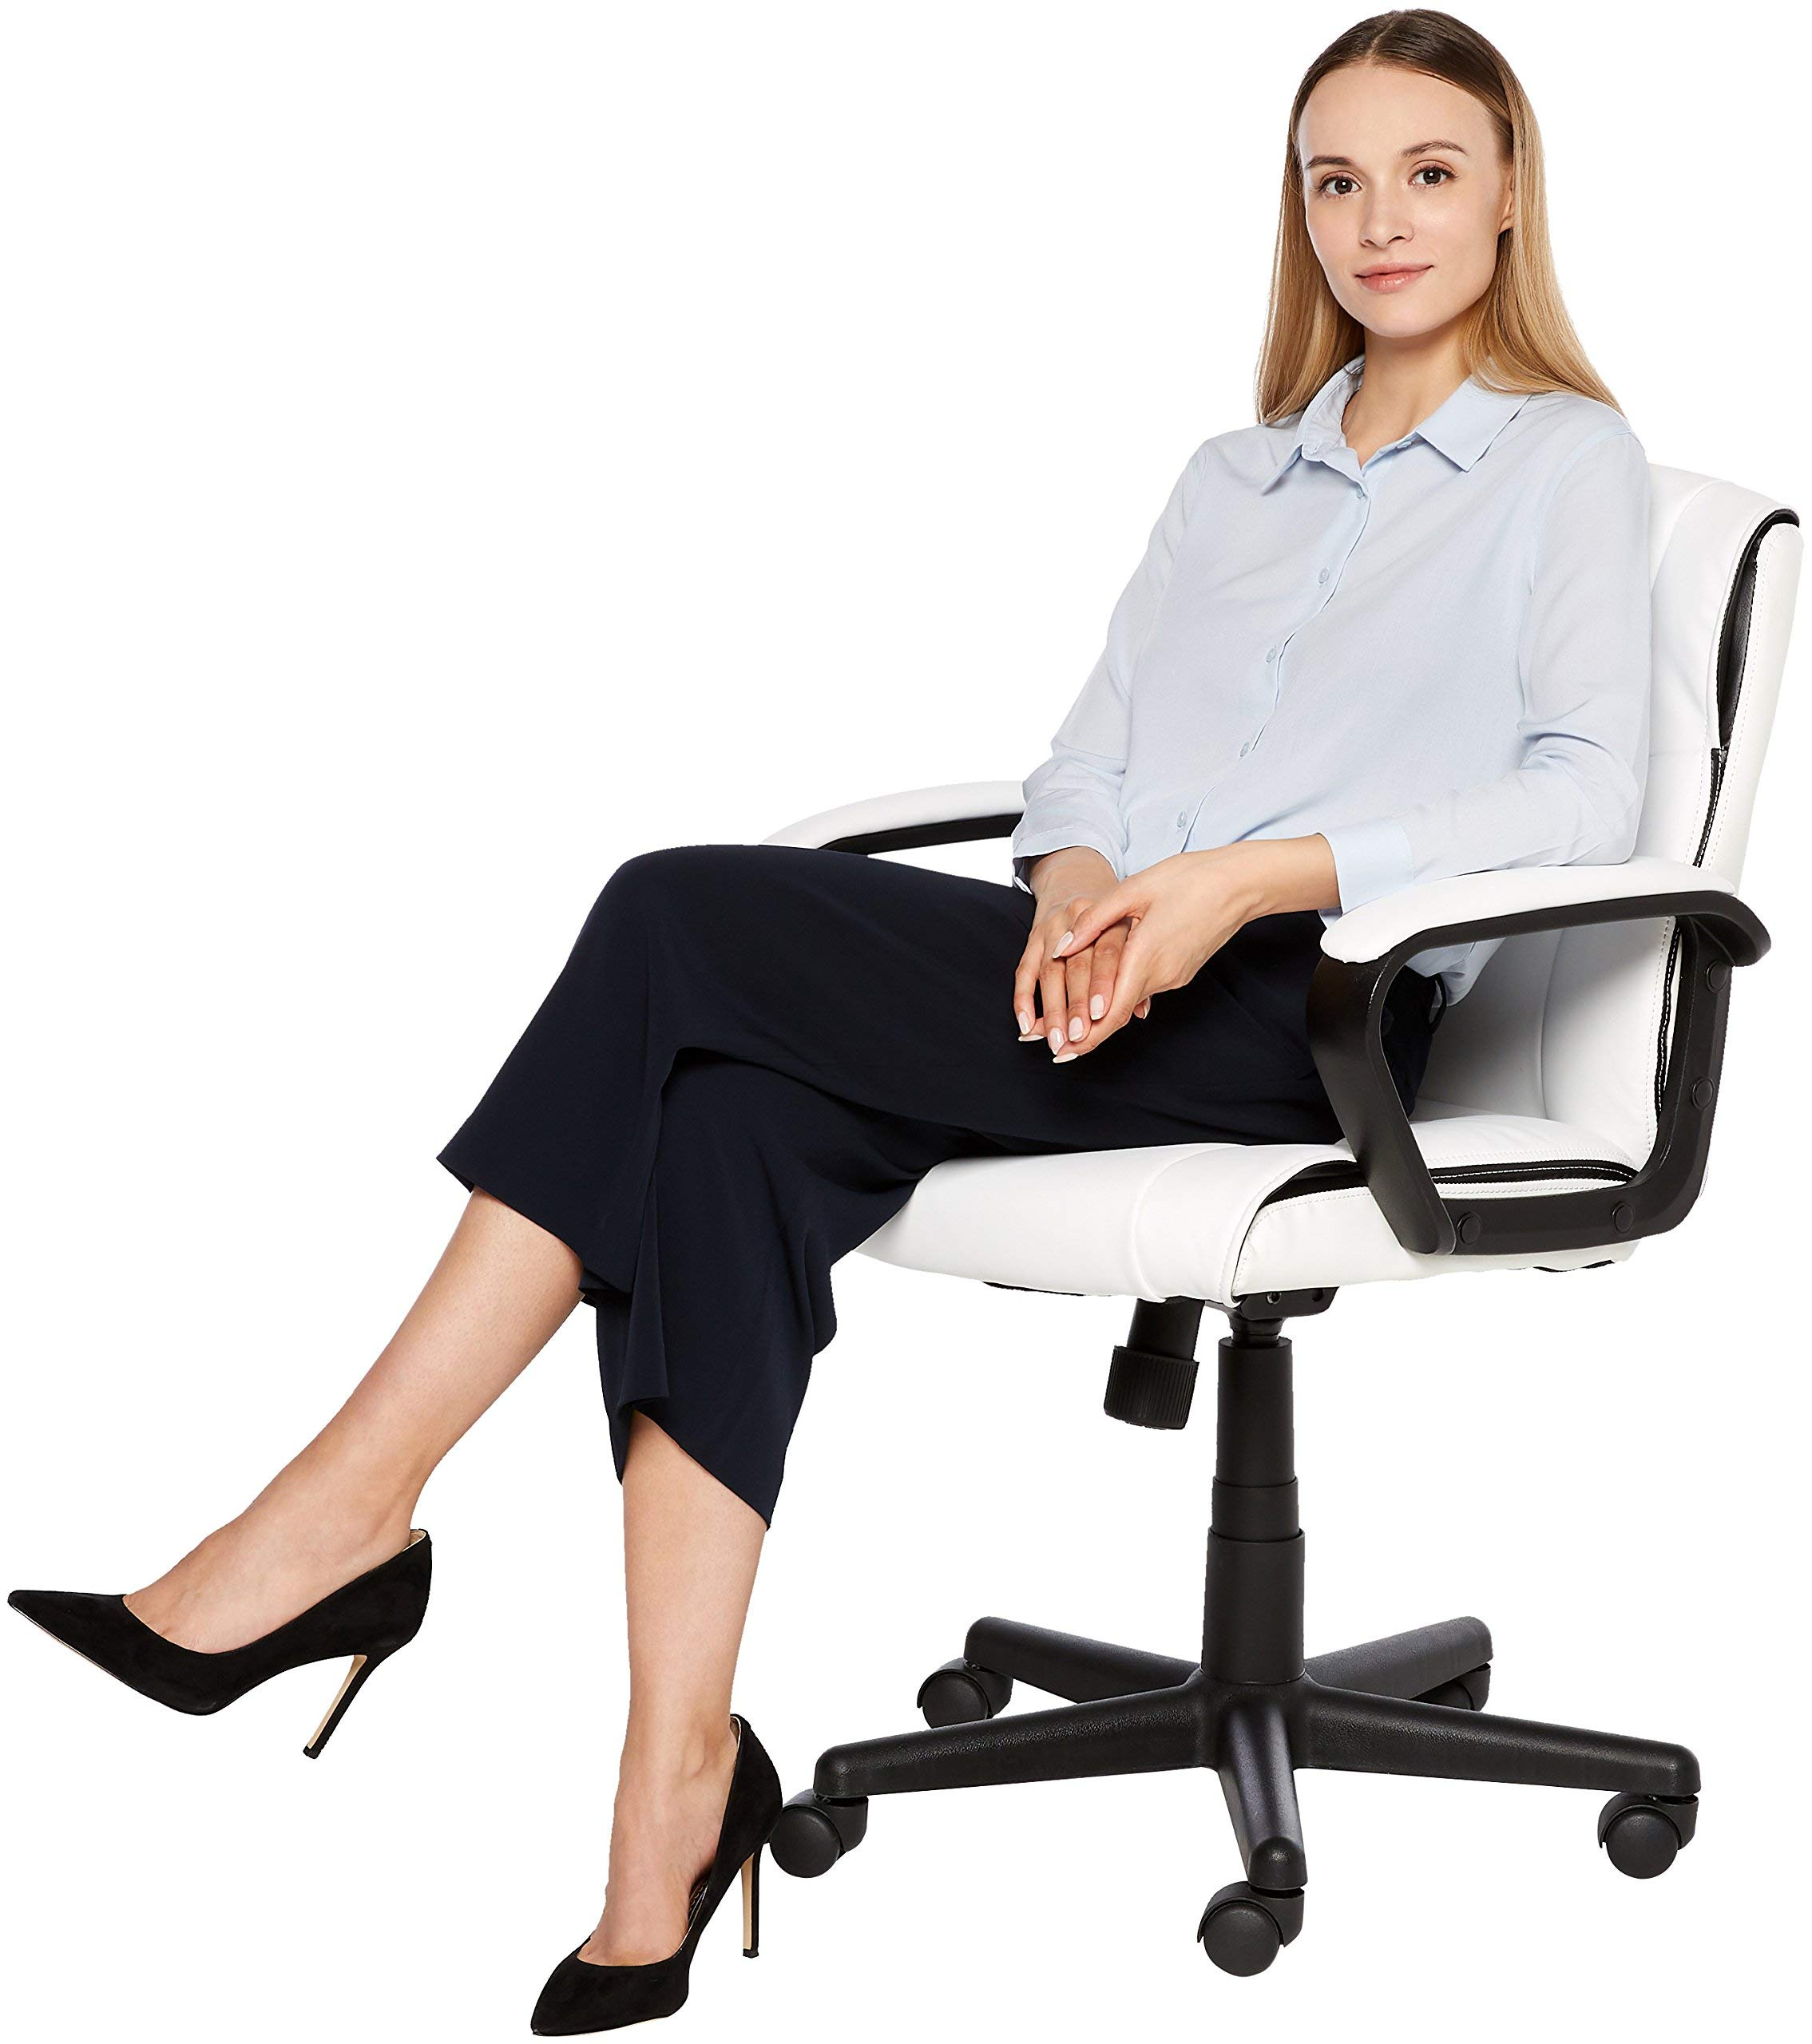 AmazonBasics Classic Leather-Padded Mid-Back Office Computer Desk Chair with Armrest - White by AmazonBasics (Image #8)